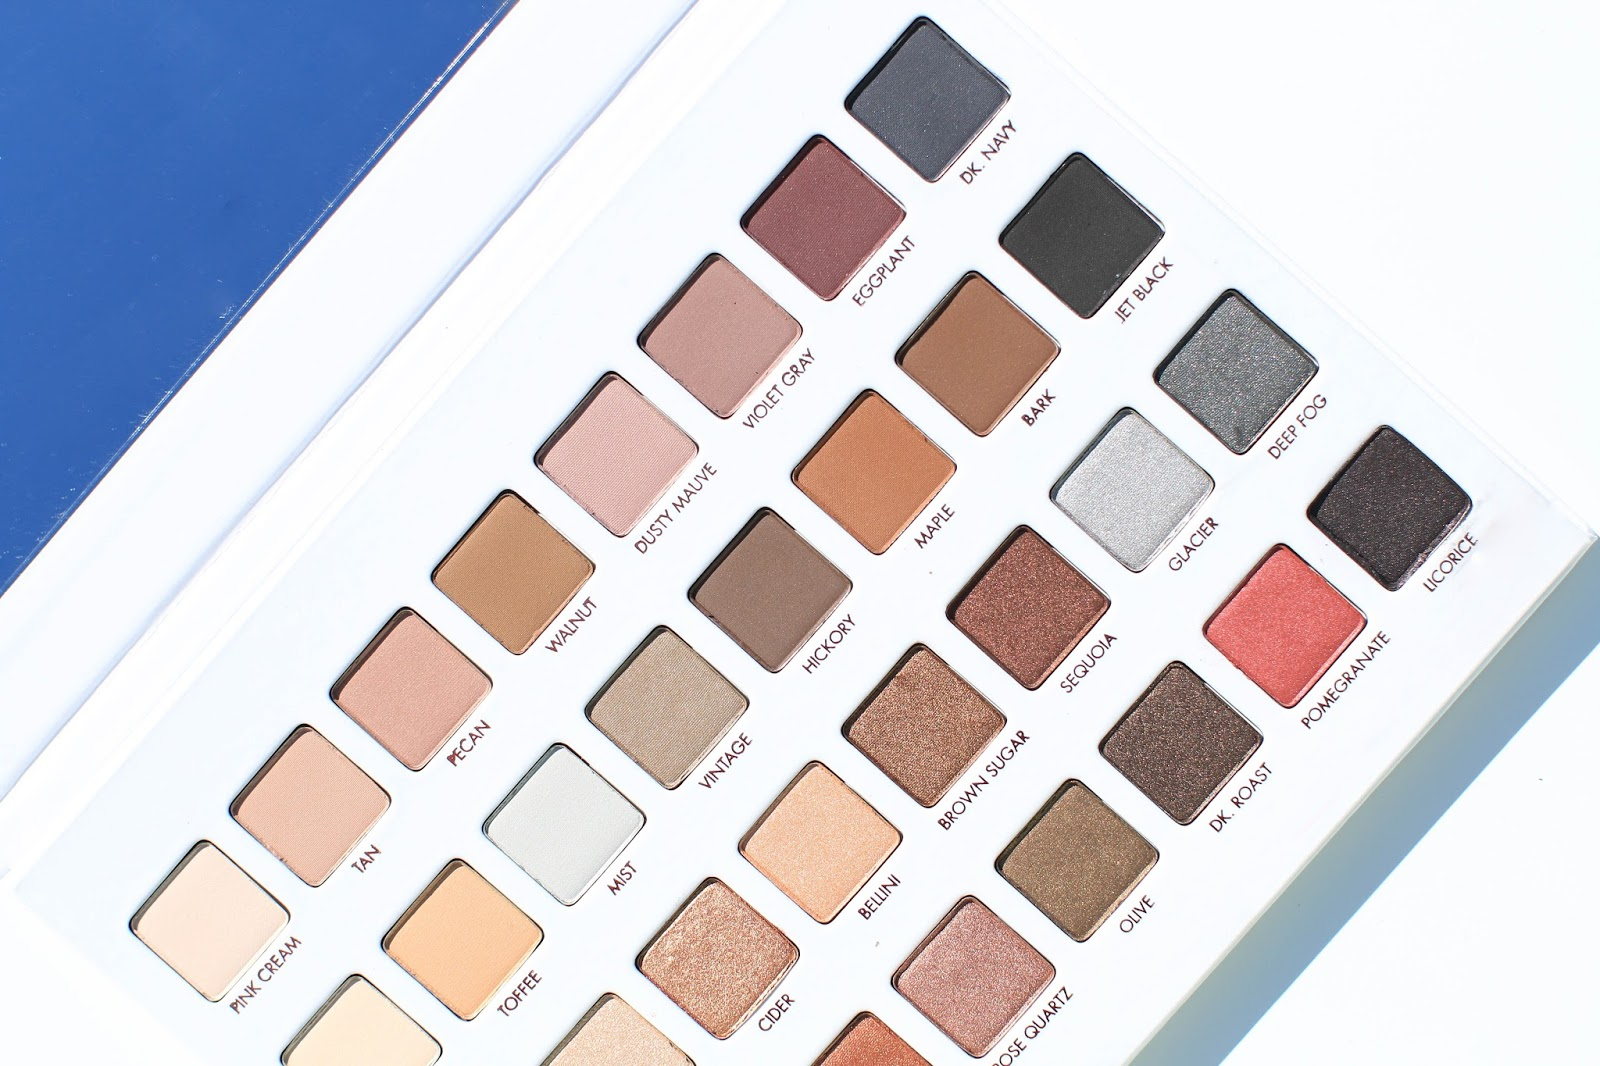 Lorac Mega Pro Palette 3 review with swatches